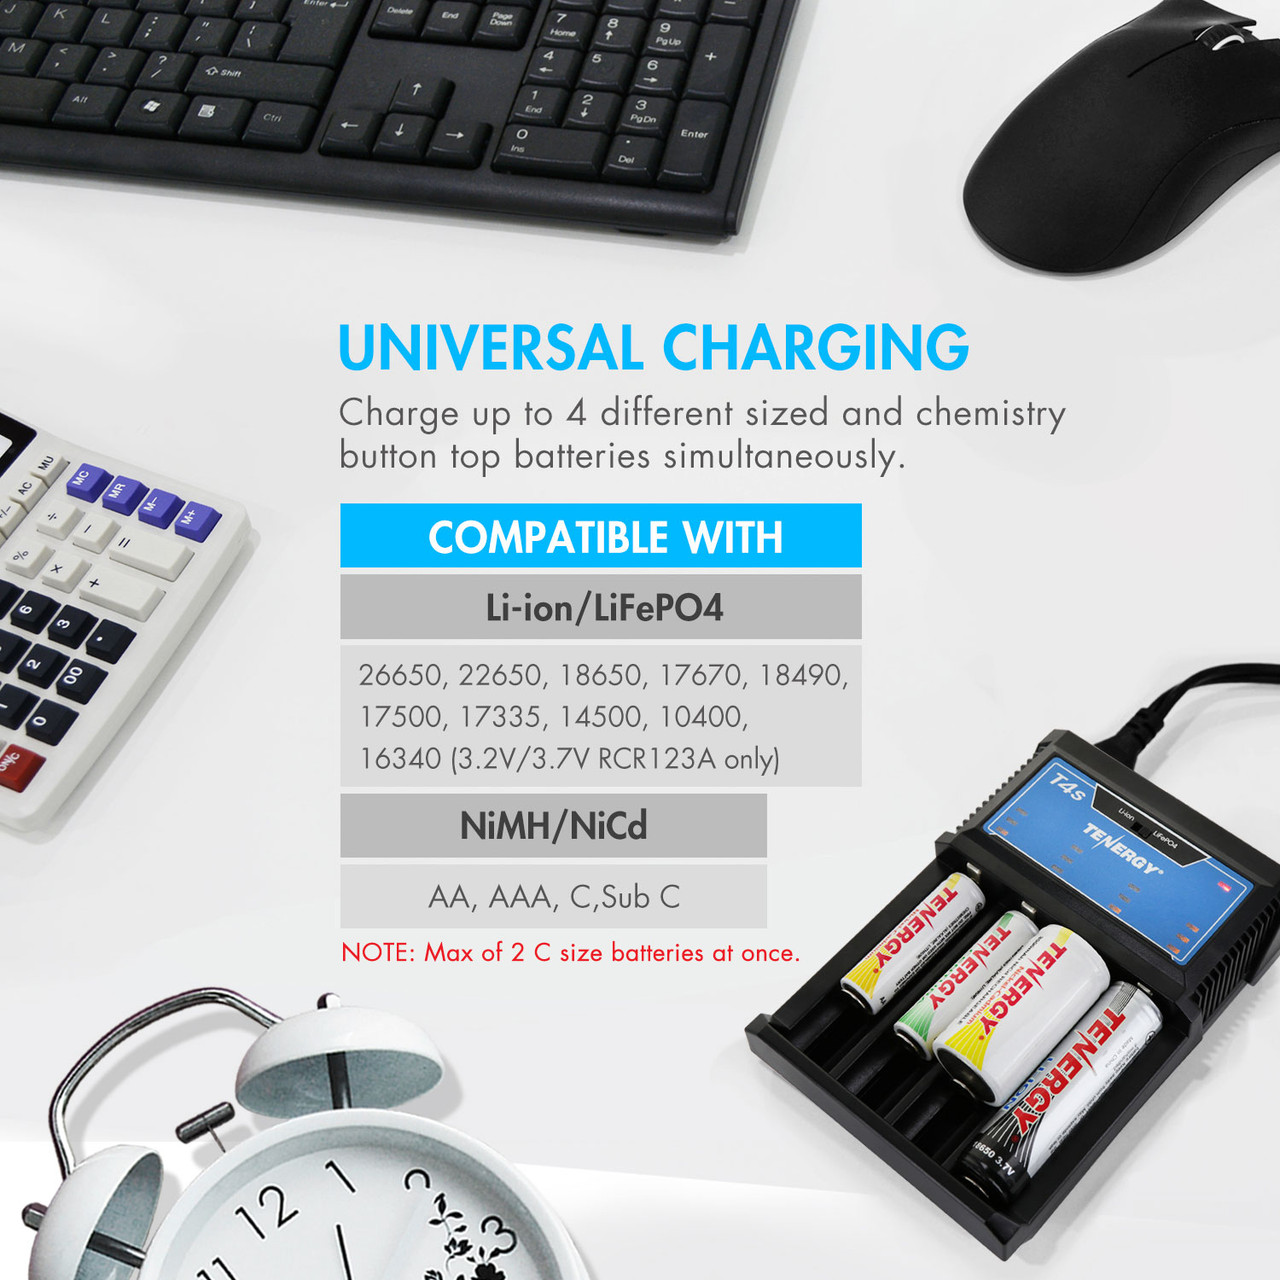 Combo: Tenergy T4s Universal LED Battery Charger + 4 Pack NiMH Rechargeable C Batteries